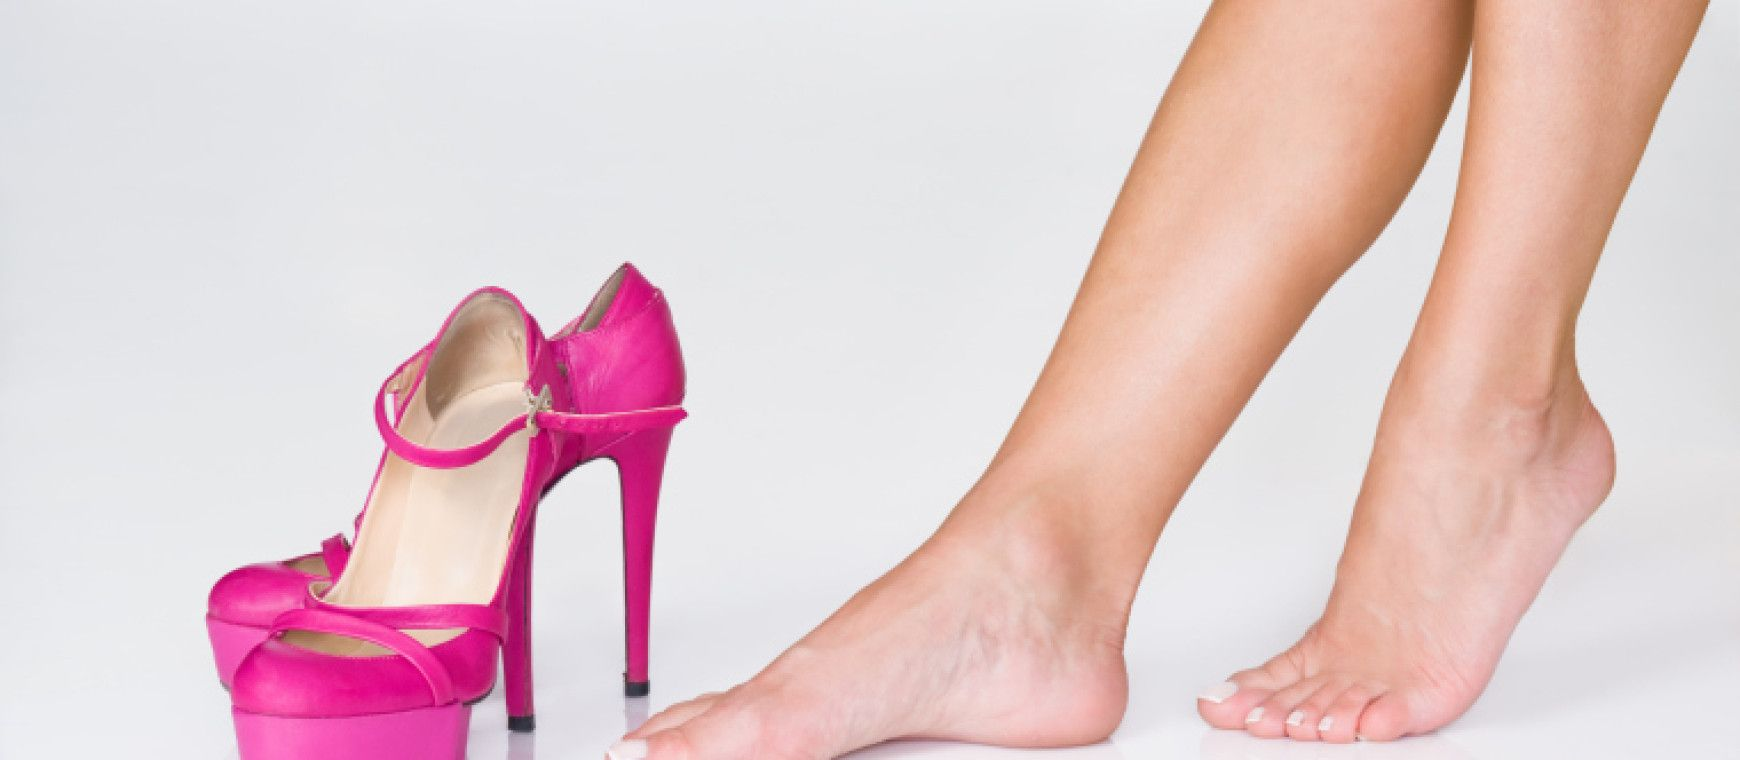 Get rid of cankles 3 quick tips train elite stiletto